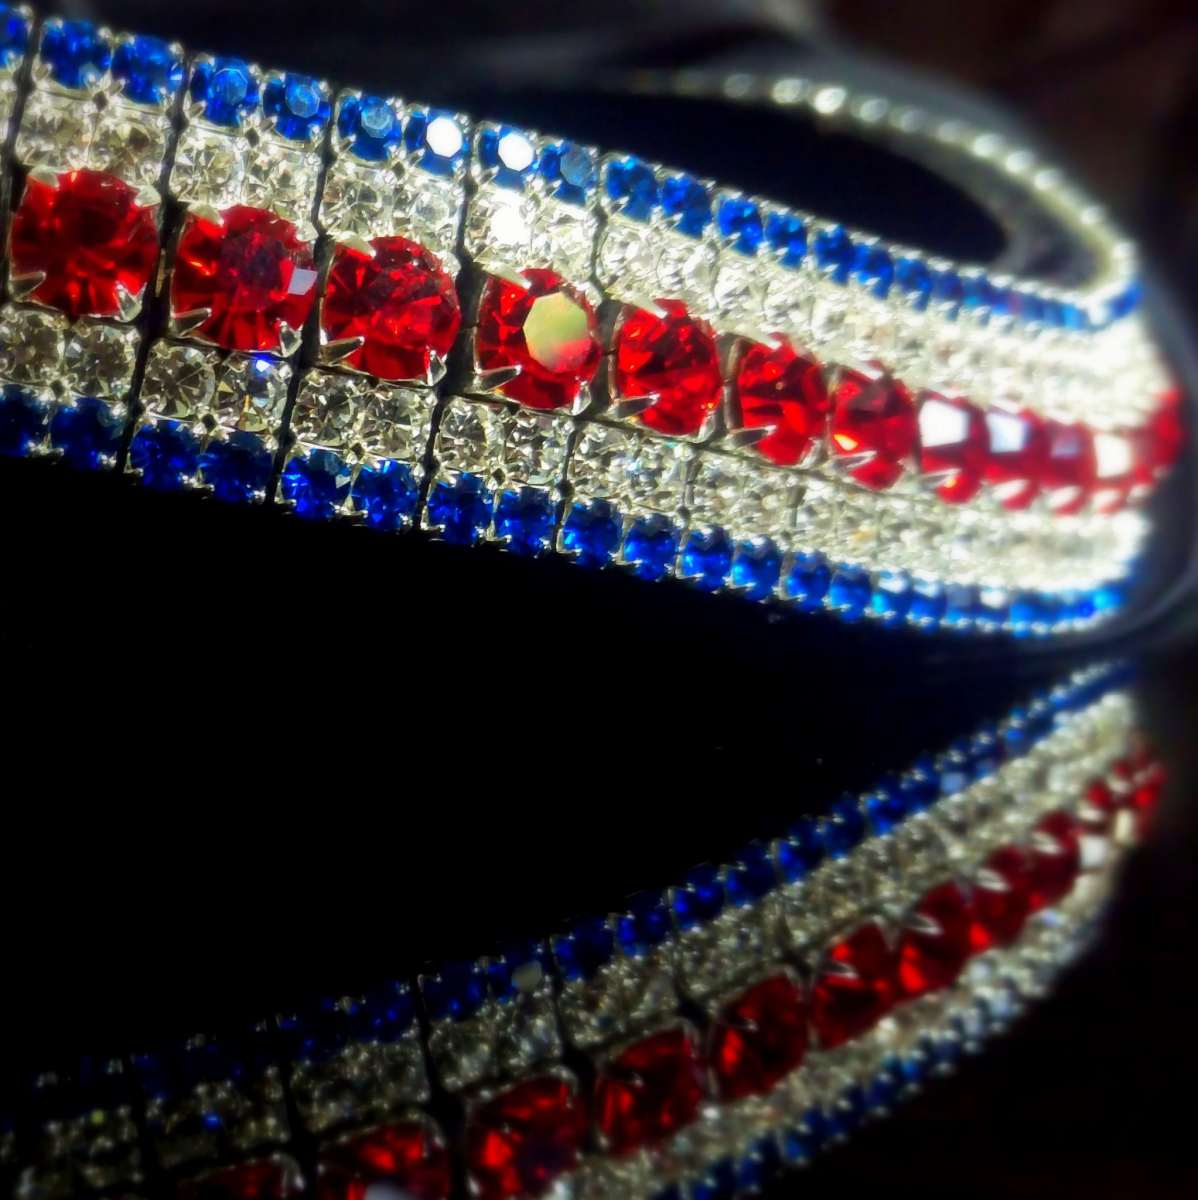 Red, white and blue browband from PonyCouture's AmazBling range of bespoke, handmade crystal browbands. This bling GB browband is perfect for showing off your style in the showjumping ring, dressage arena or anything horse related. Perfect for equestrian enthusiasts.